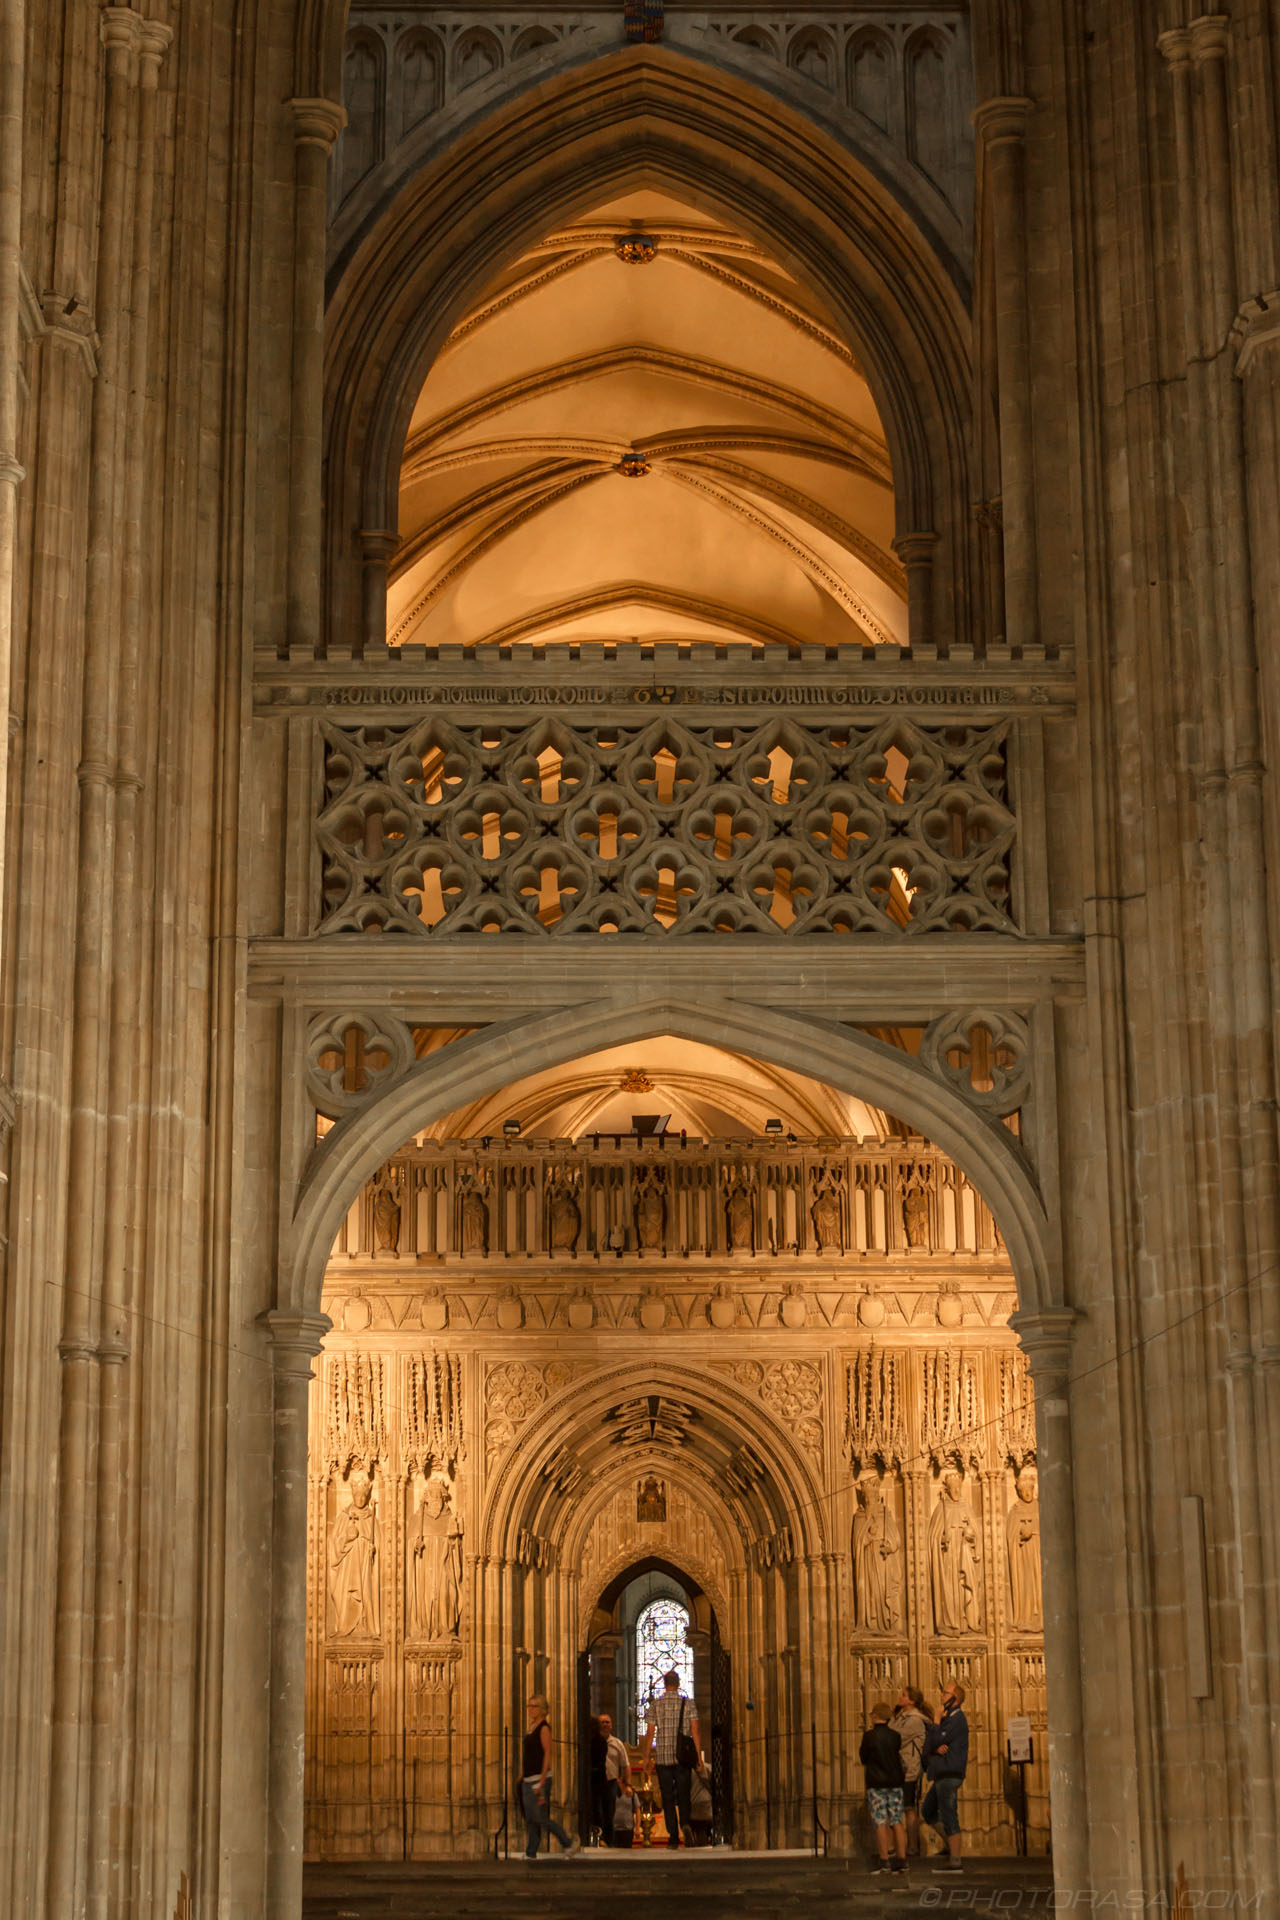 http://photorasa.com/canterbury-cathedral/tudor-arch-revealing-choir-screen-and-entrance-to-choir-stalls-and-presbytery/